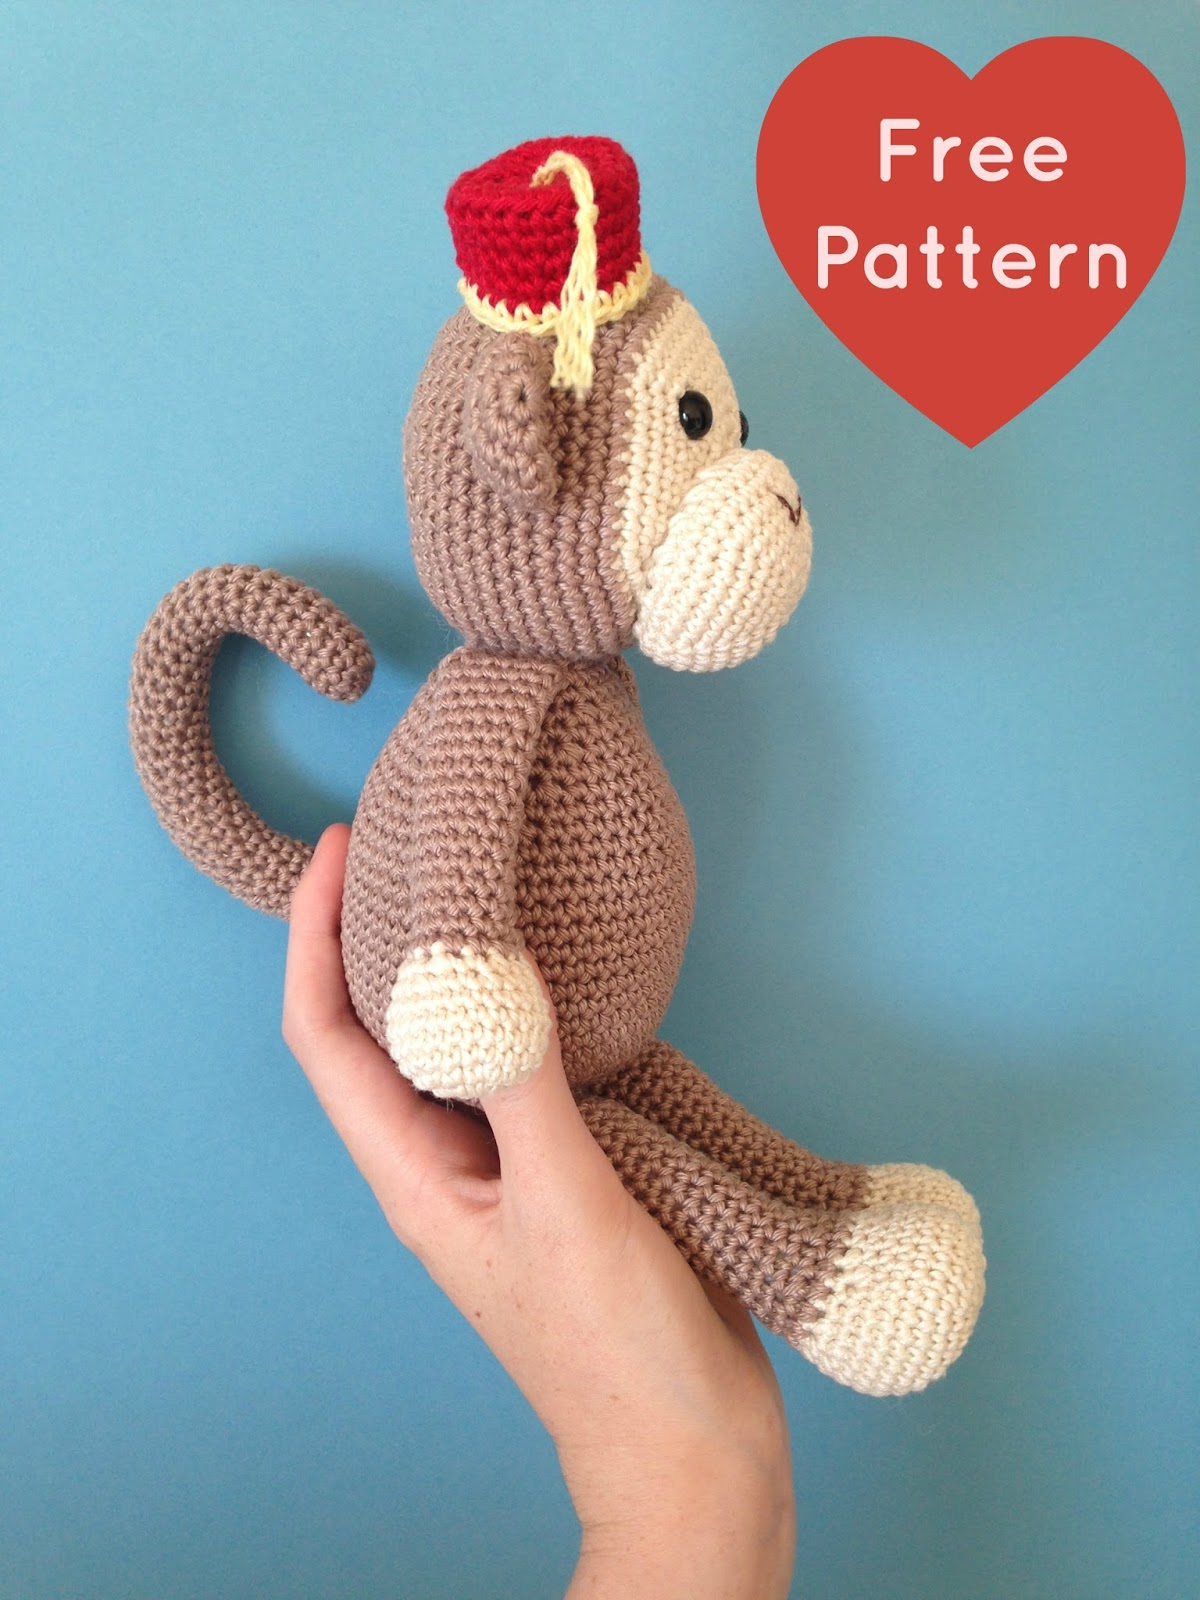 Heart sew cheeky little monkey free crochet amigurumi pattern cheeky little monkey free crochet amigurumi pattern bankloansurffo Choice Image